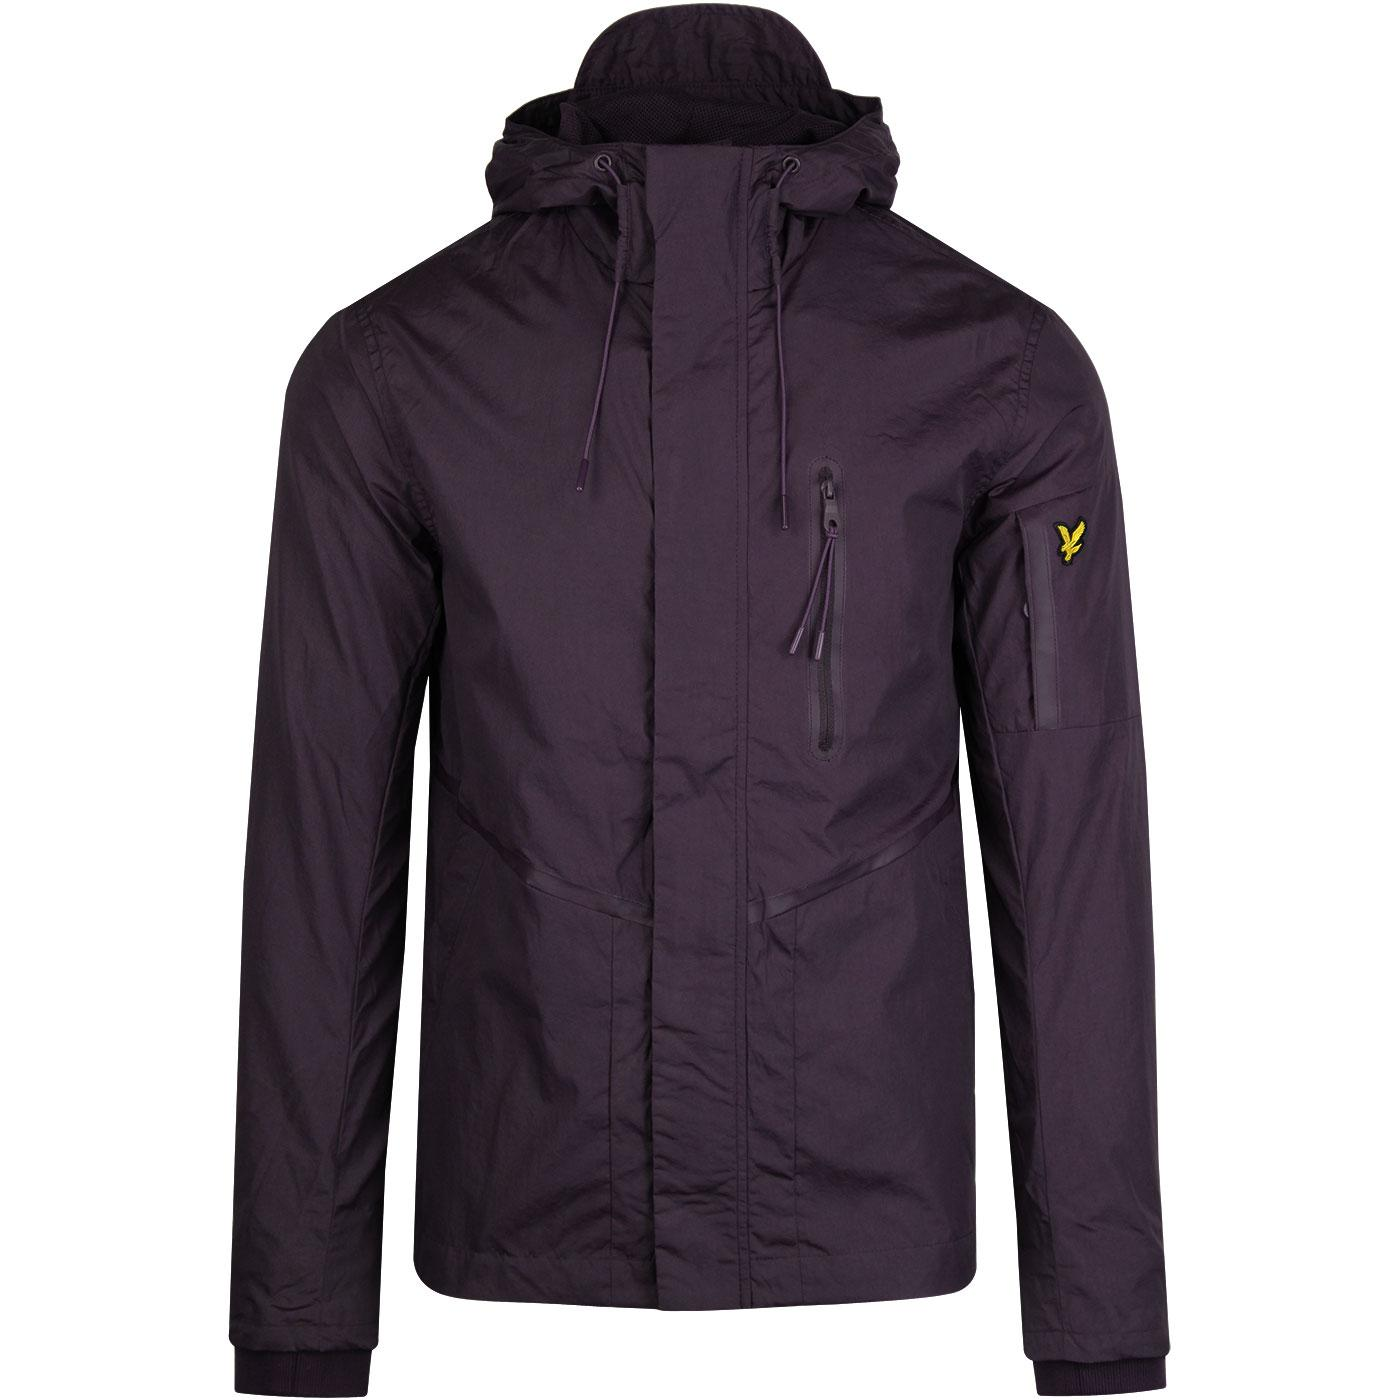 LYLE & SCOTT Retro 90s Minimal Hooded Jacket (MP)